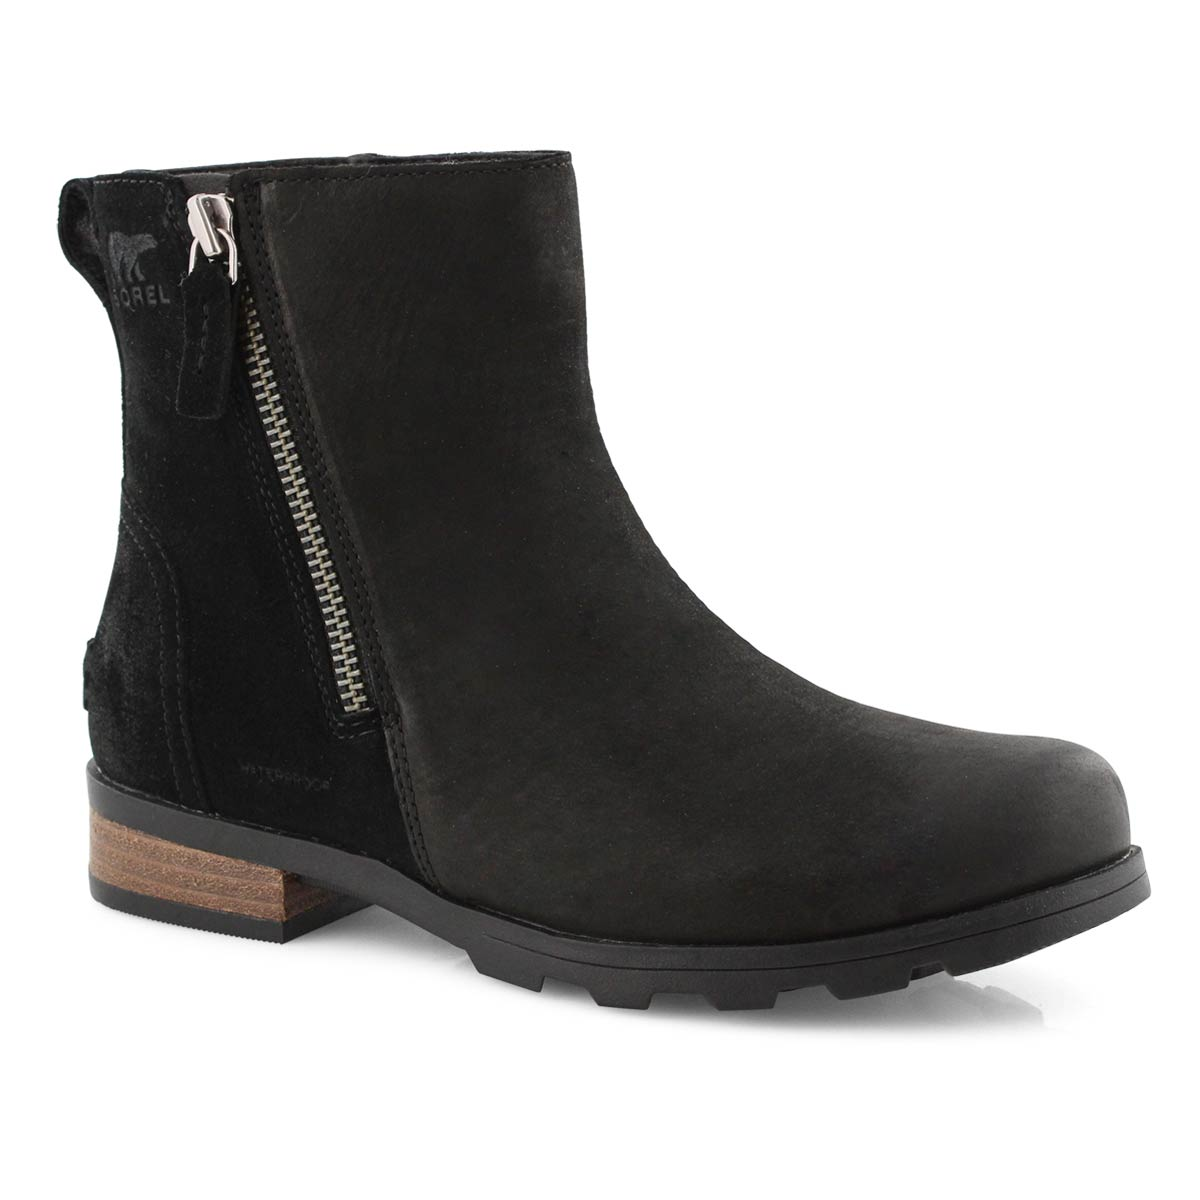 Lds Emelie Zip black wtpf ankle boot